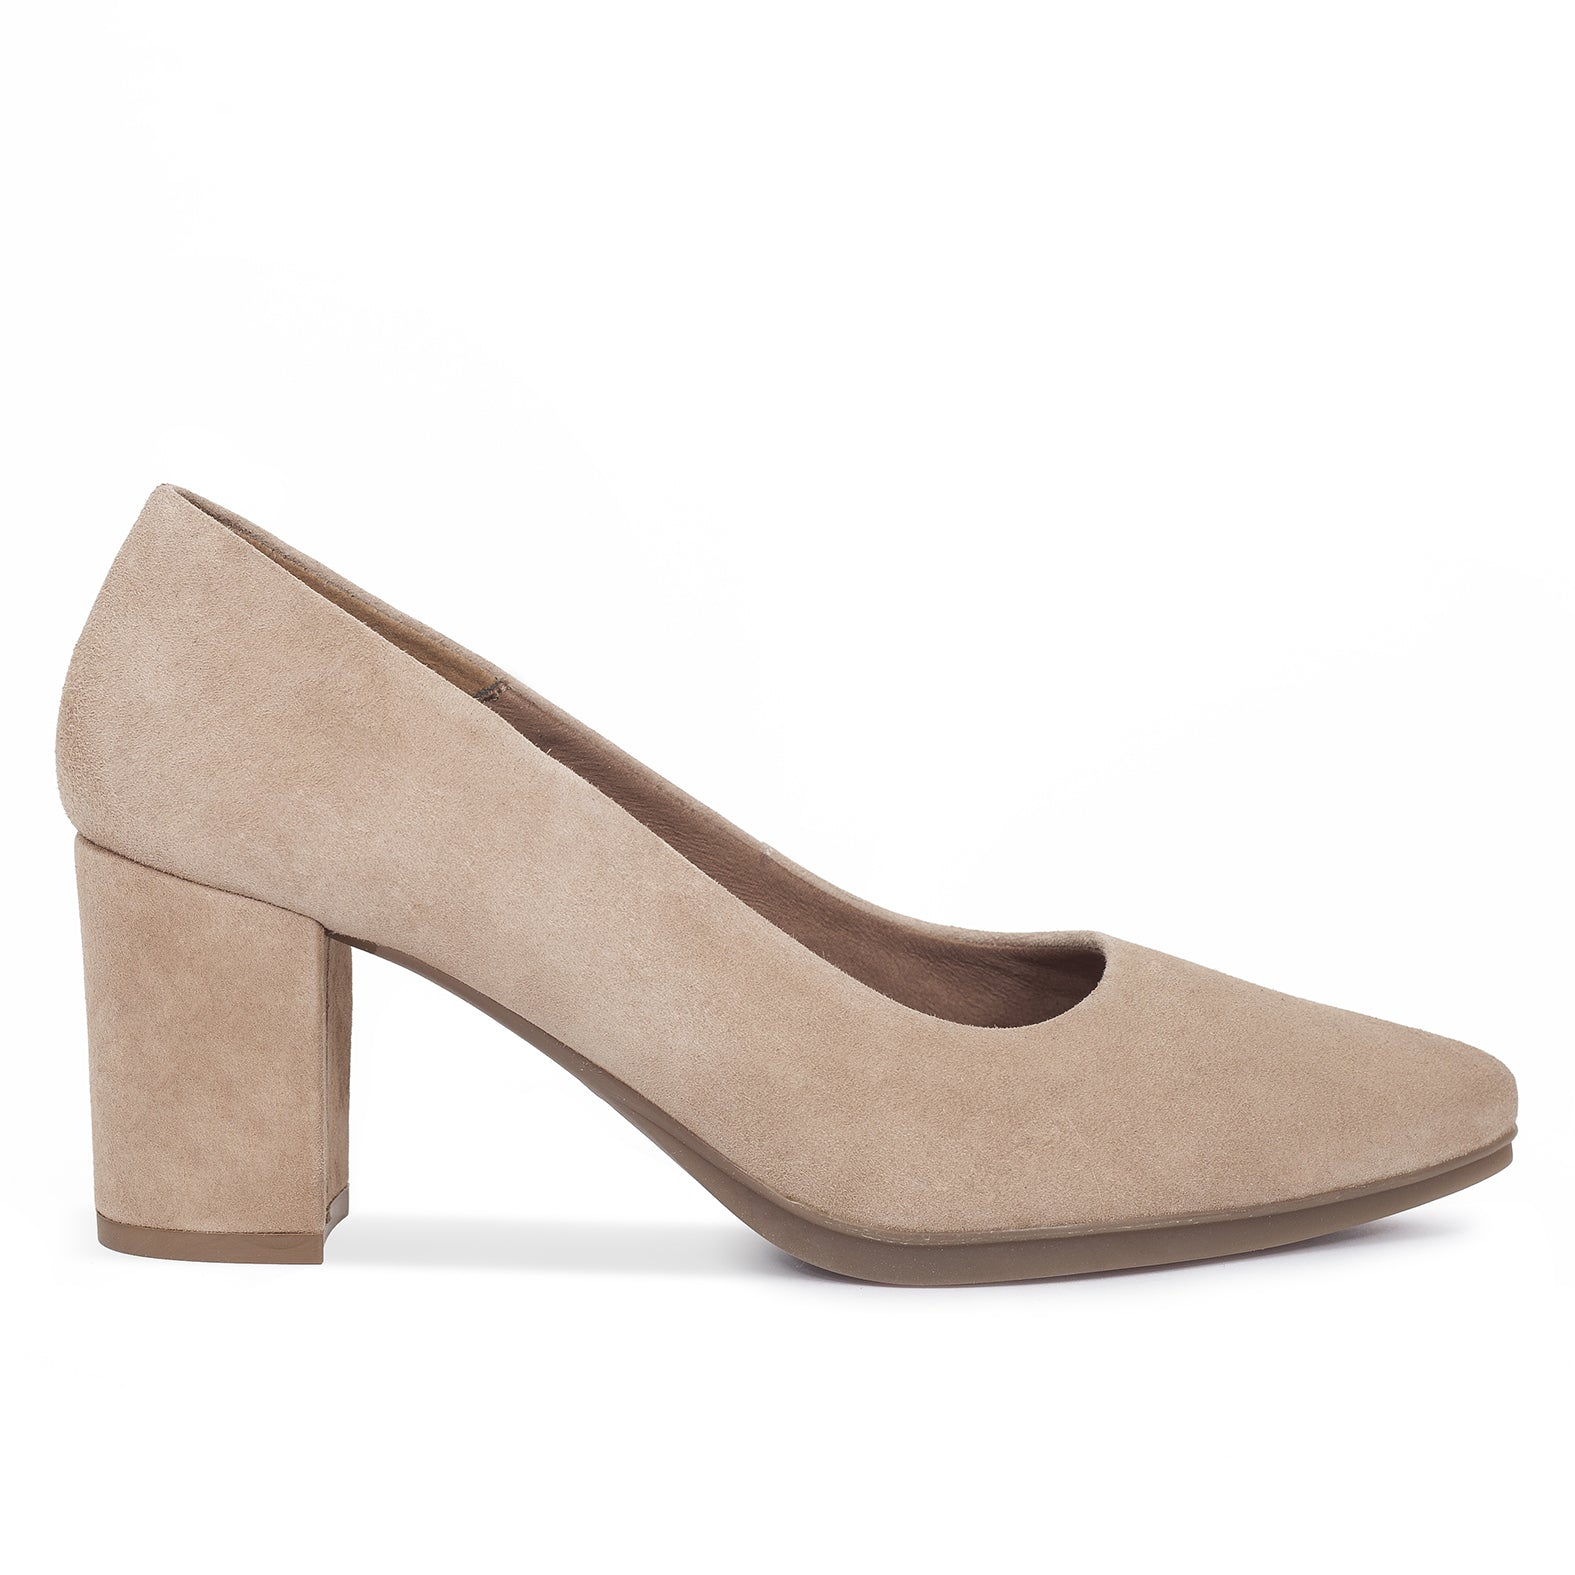 Mimao S Rosa Urban Zapatos Online Tacón Ancho Nude Mujer fqwq1BHAF